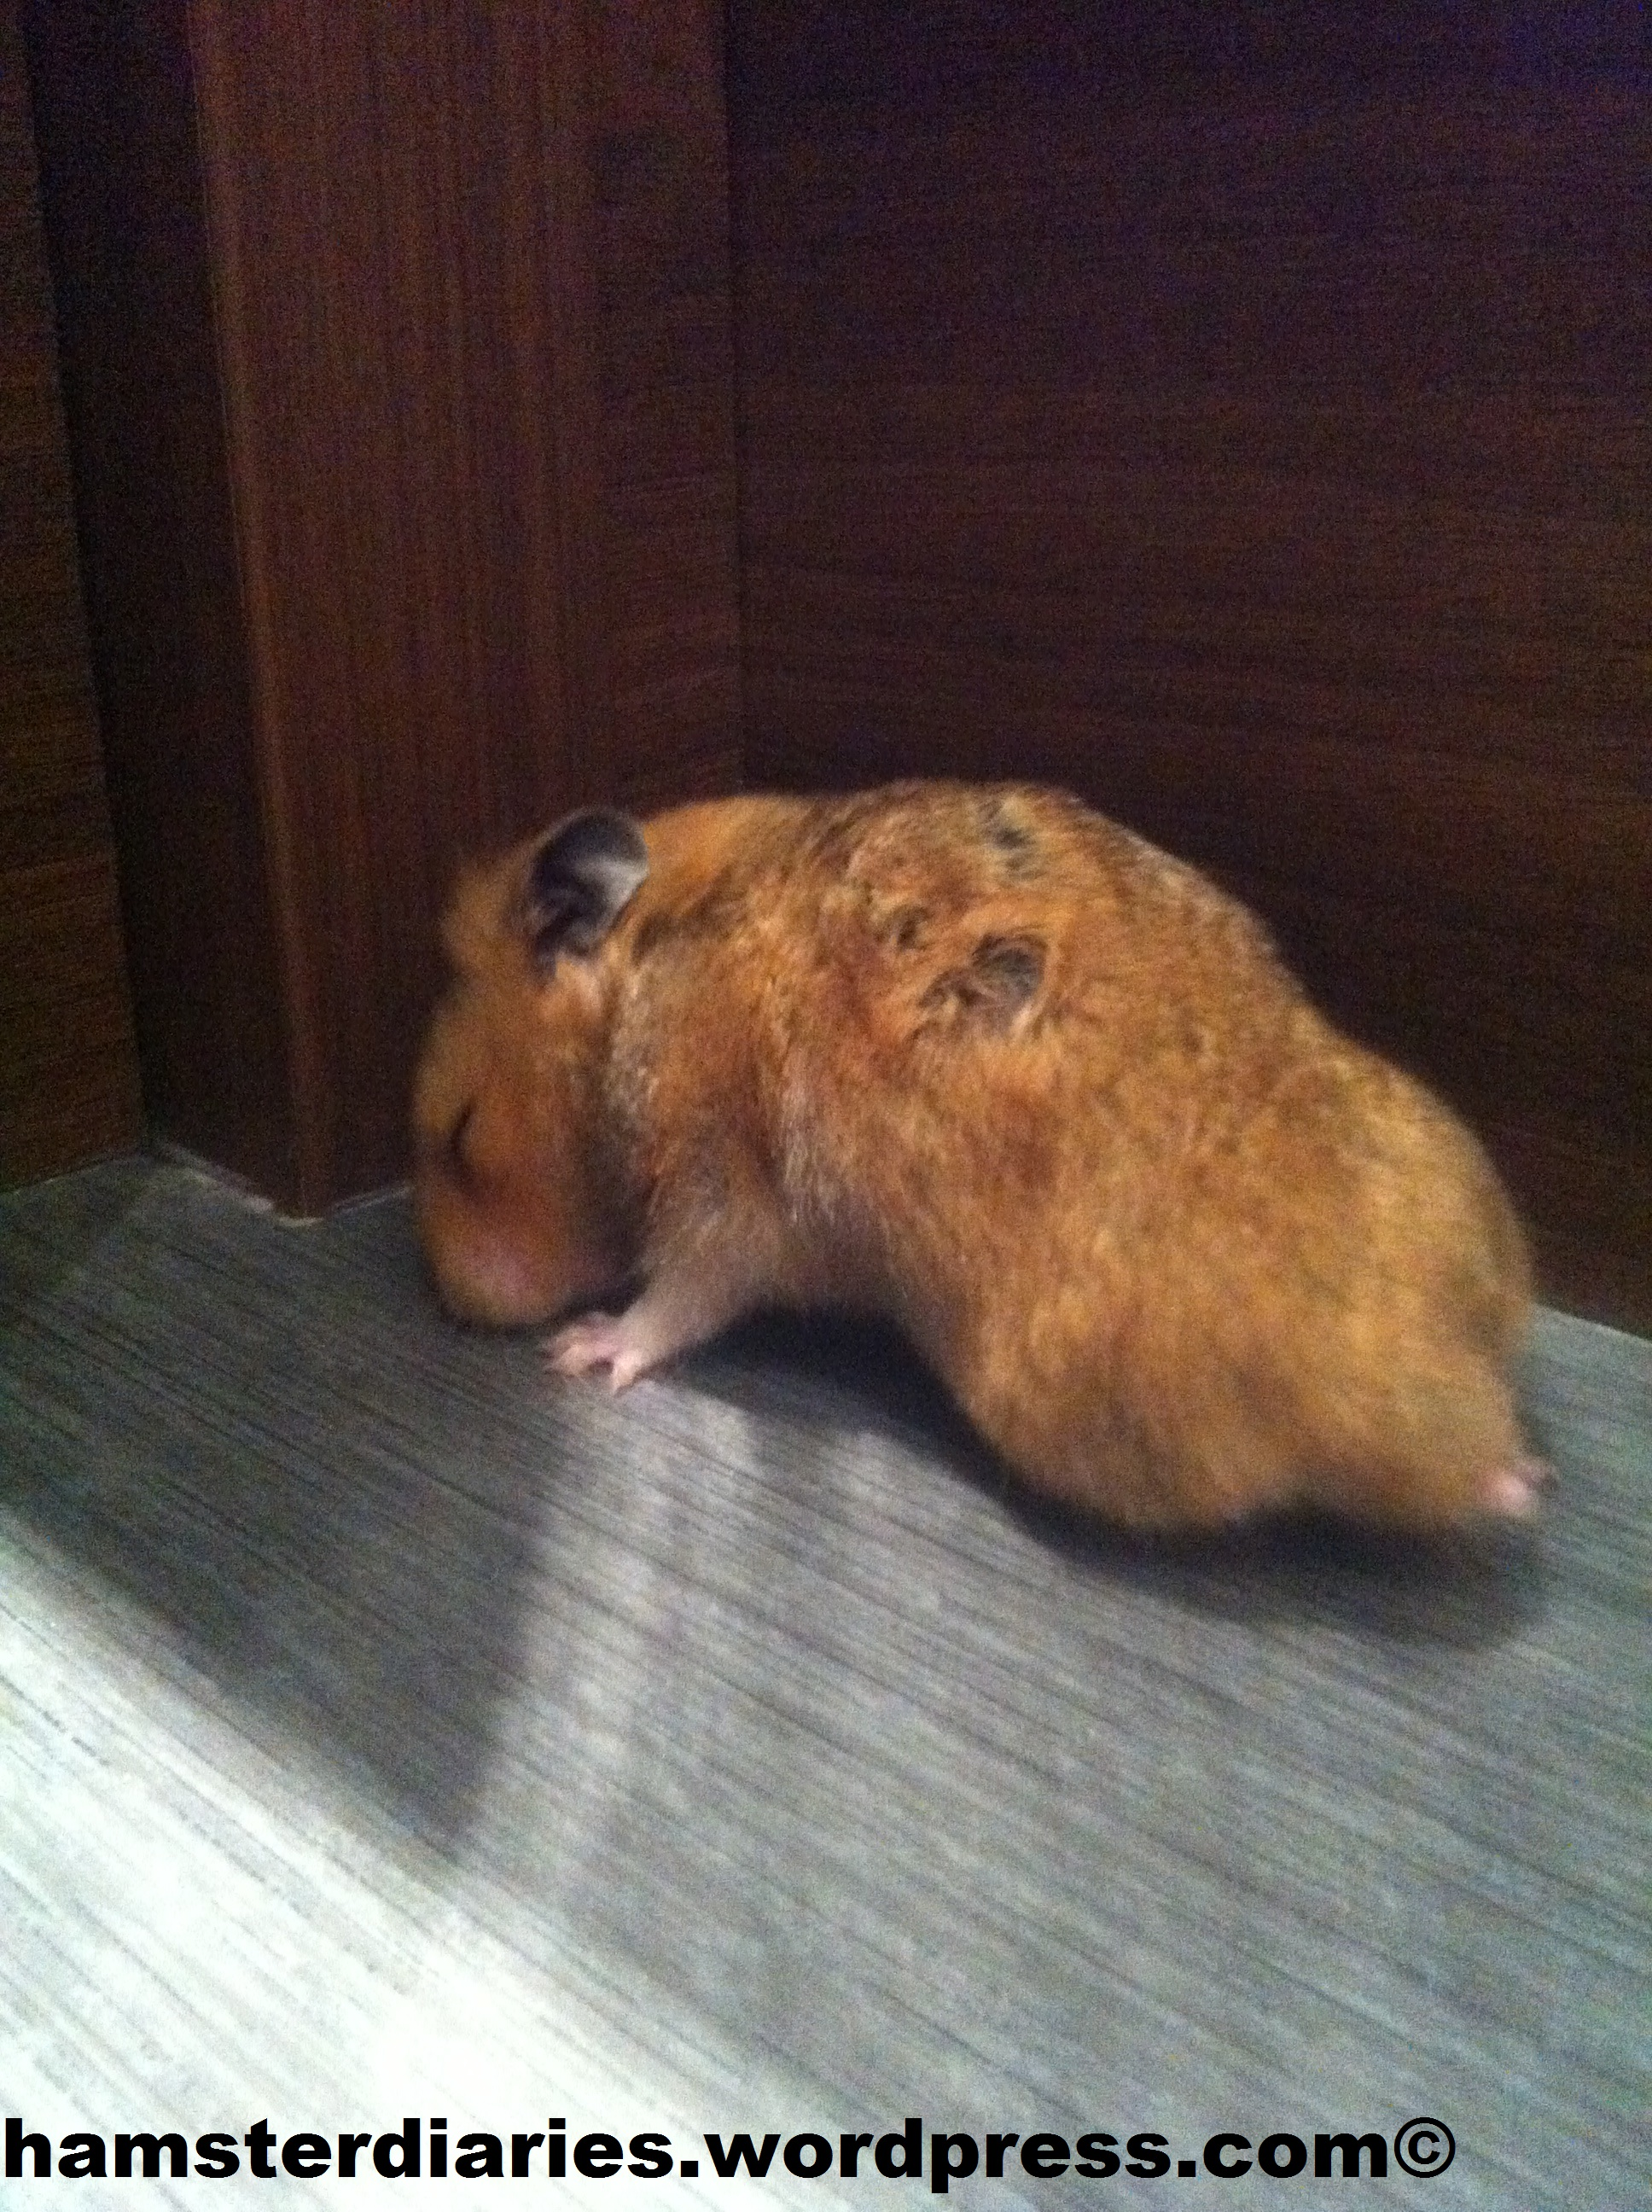 moles on my hamster | HamsterDiaries